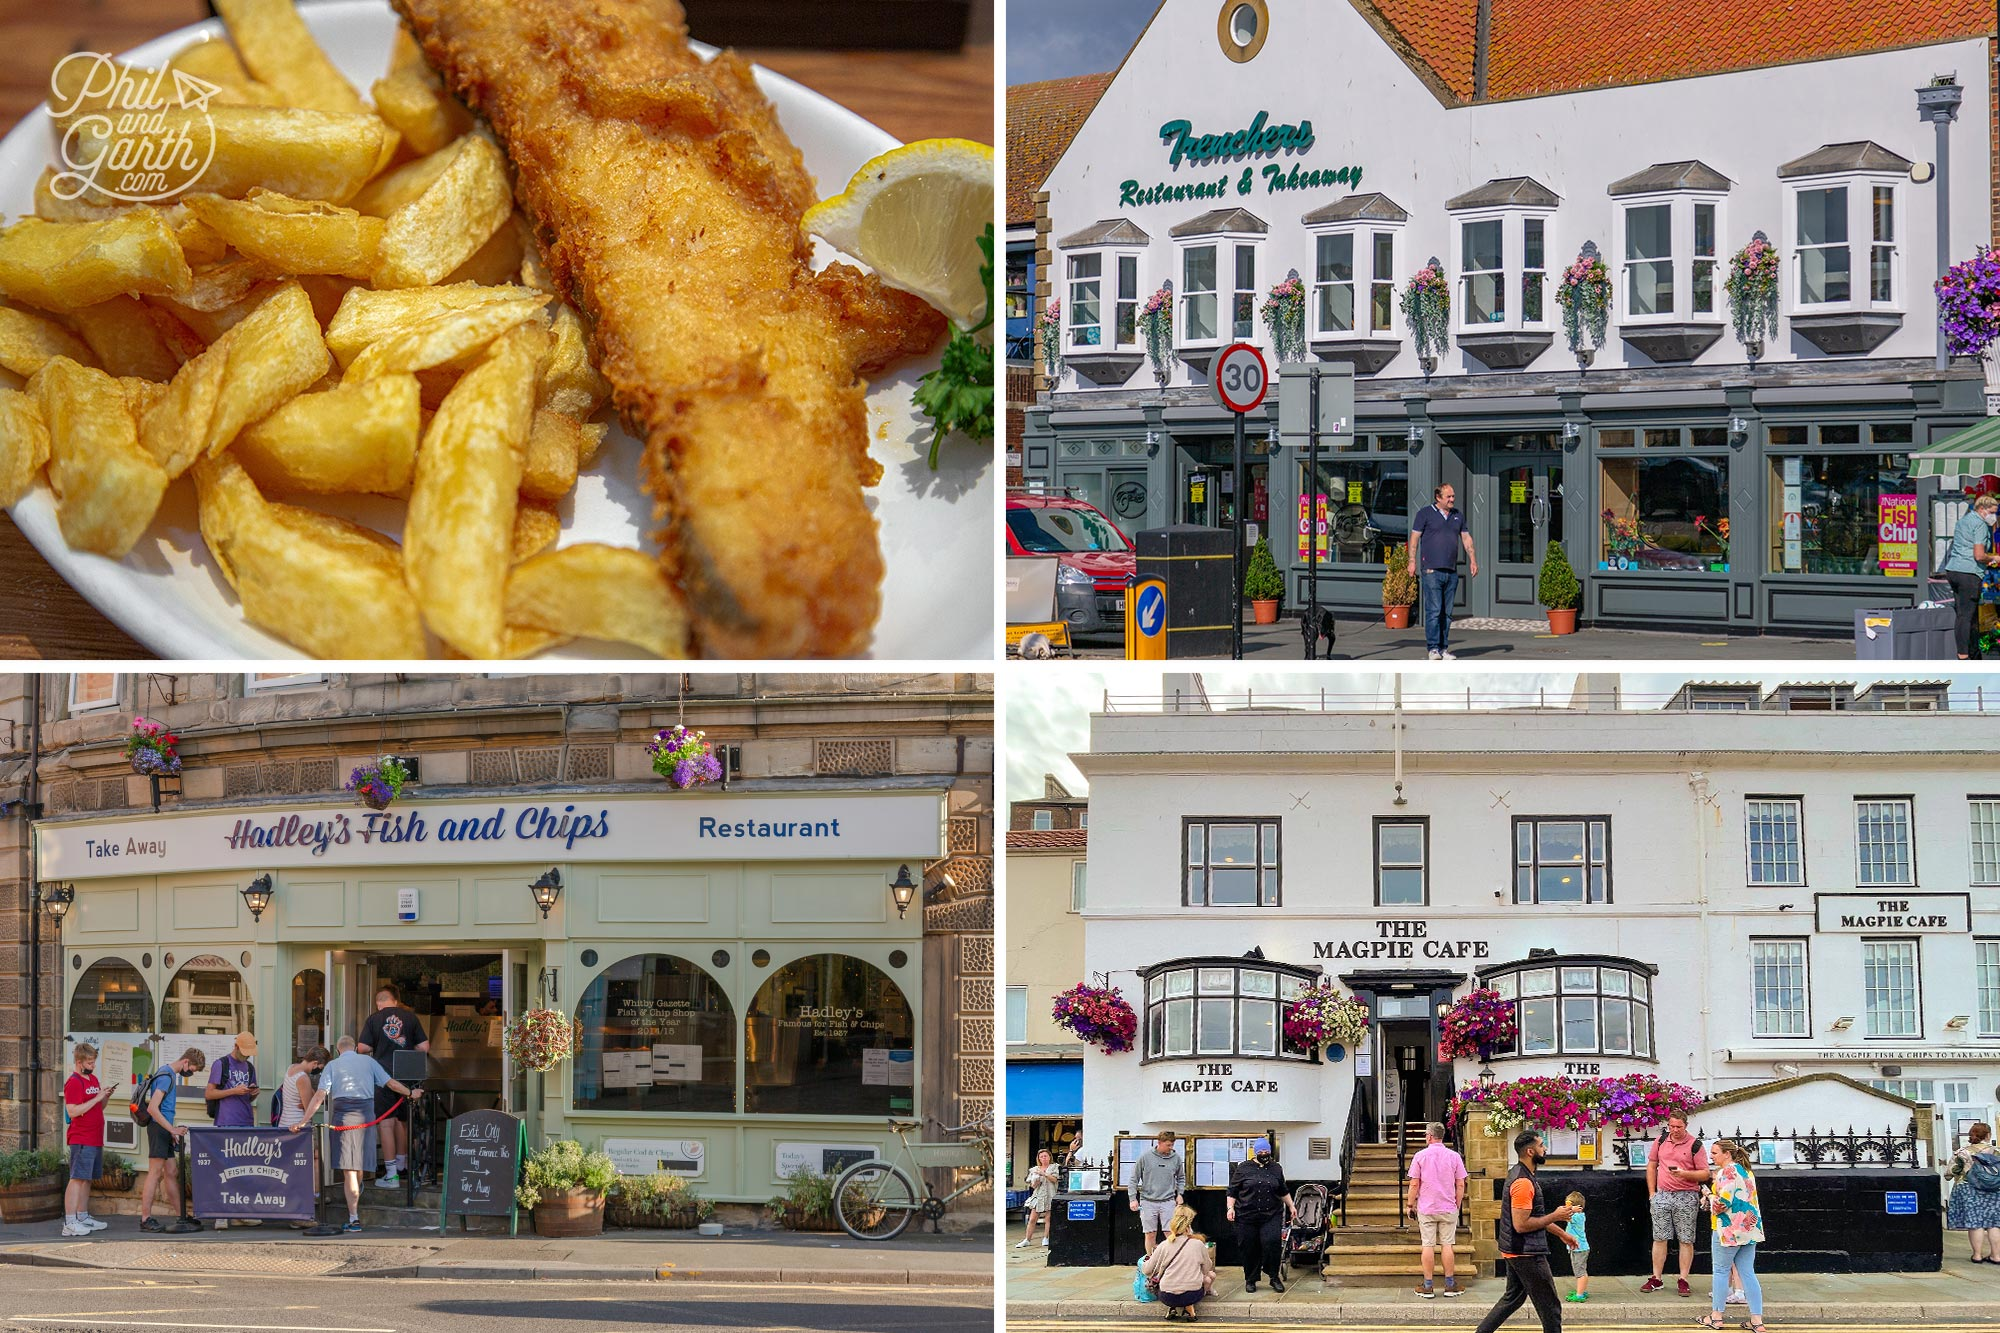 These are the top 3 restaurants for fish and chips in Whitby